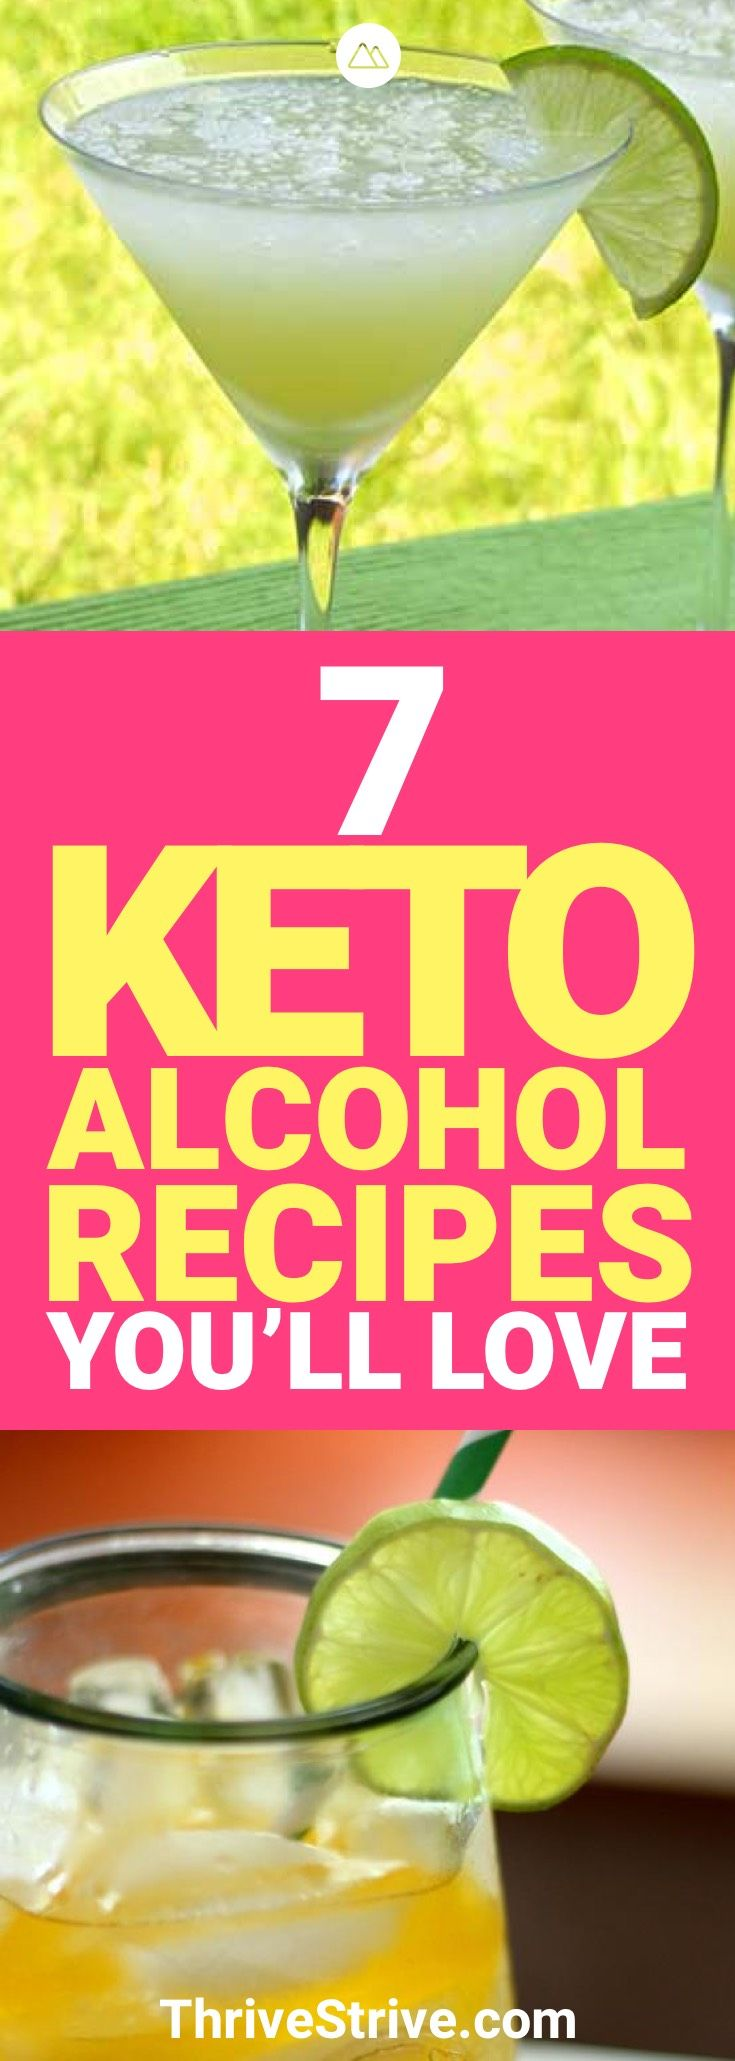 If you're looking to drink on a ketogenic diet, look no further. Here are 7 keto alcohol recipes that are going to keep you in ketosis while you're out having fun.